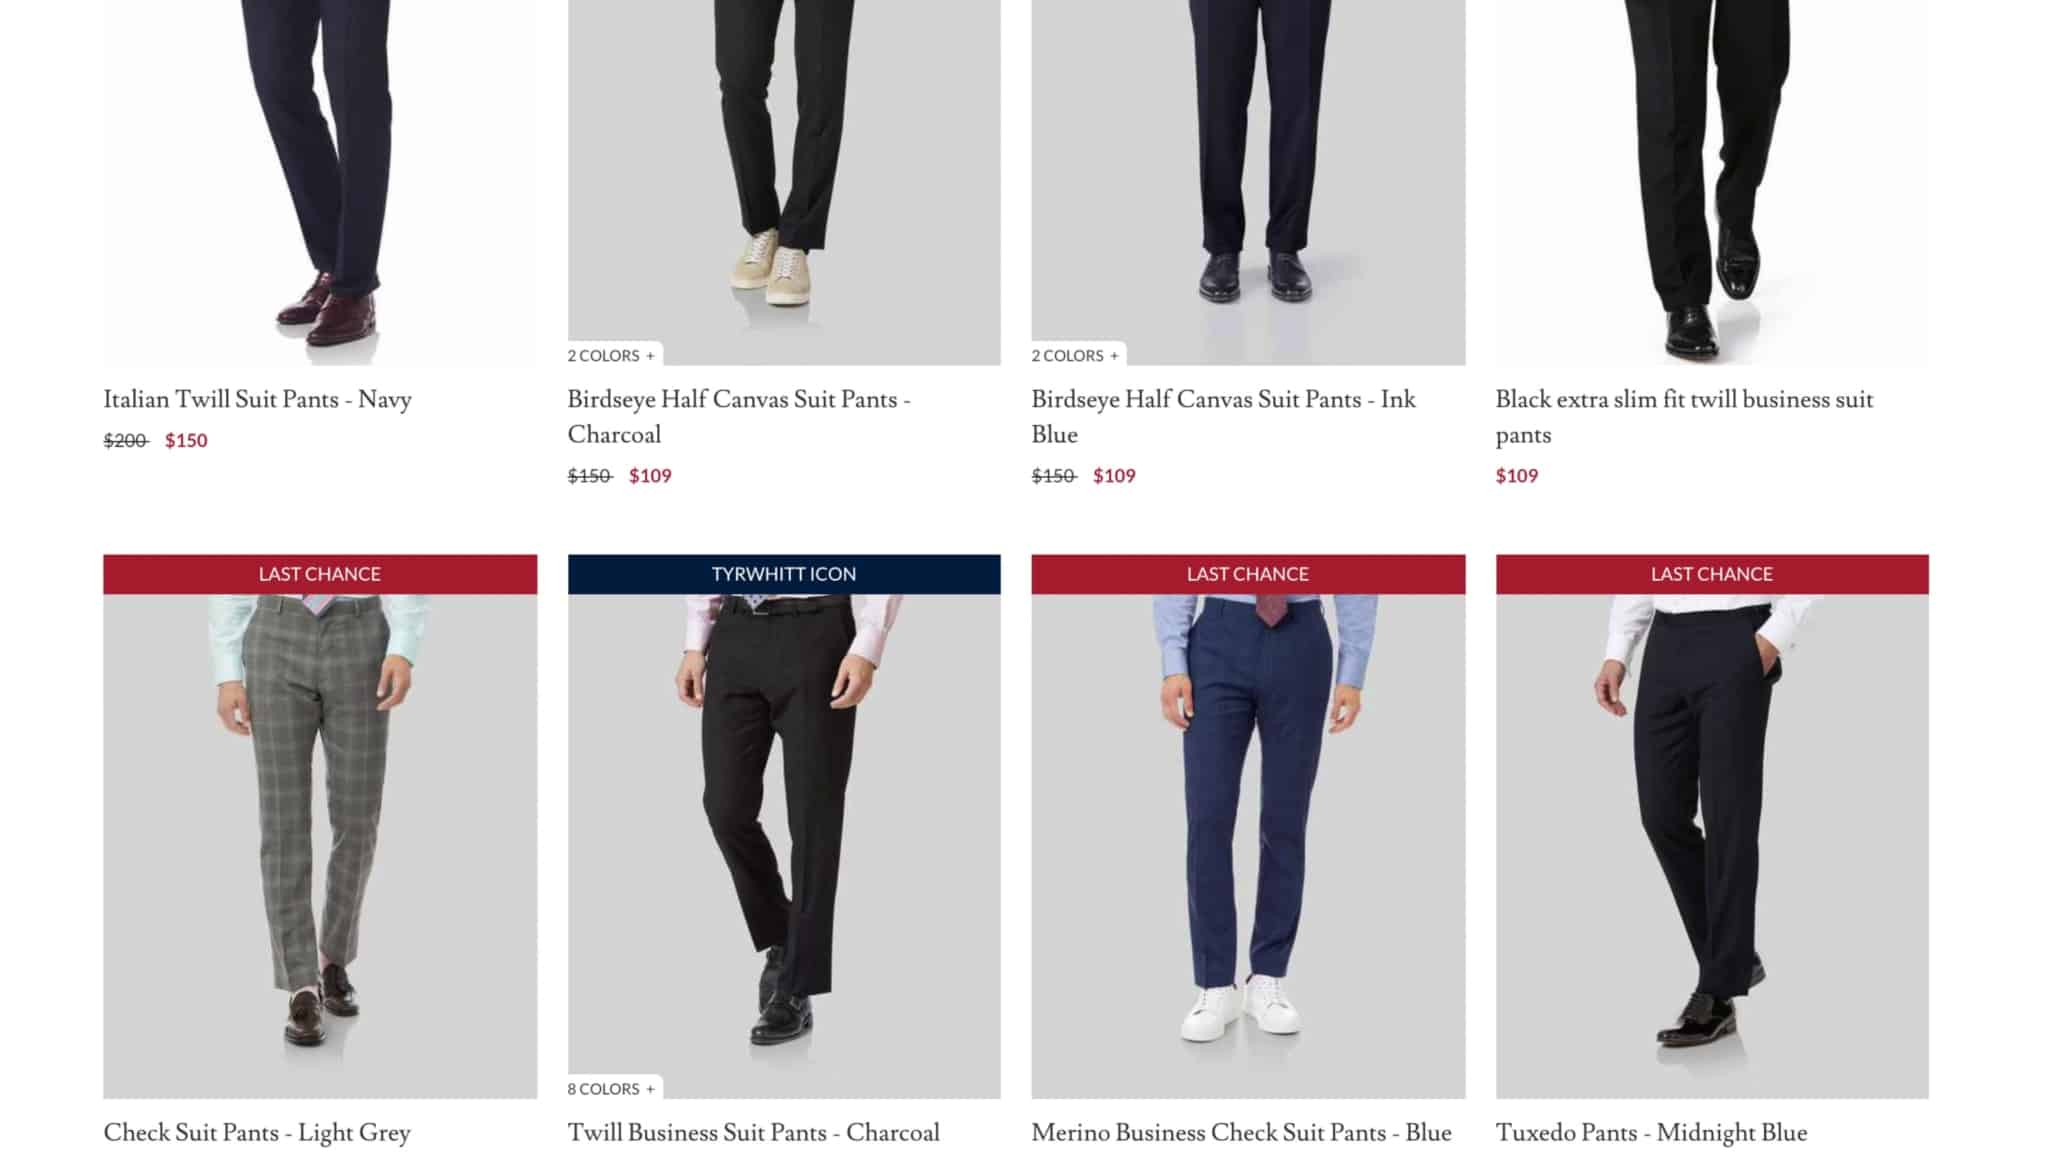 Most of the commenters are not in favor of the trousers from Charles Tyrwhitt.